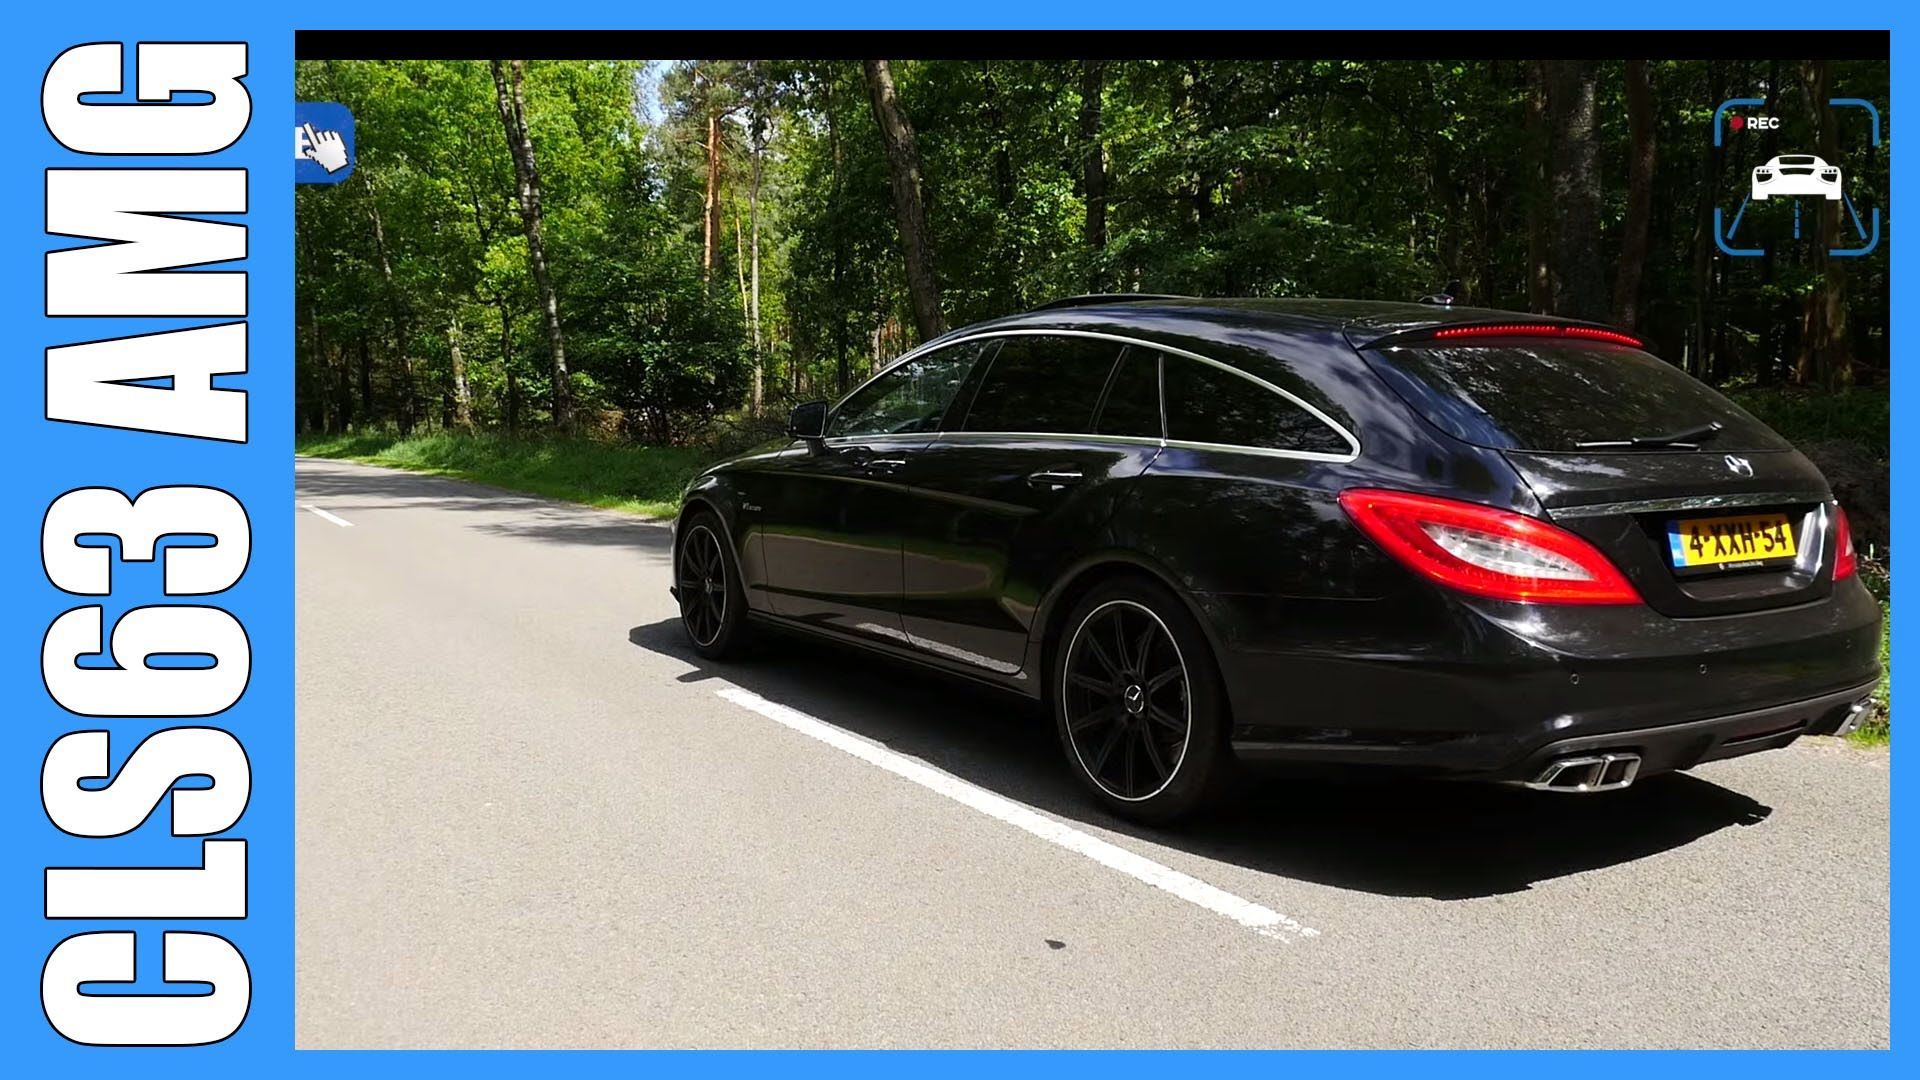 Mercedes CLS63 AMG 5 5 V8 BiTurbo vs E63 AMG 6 2 V8 LAUNCH CONTROL